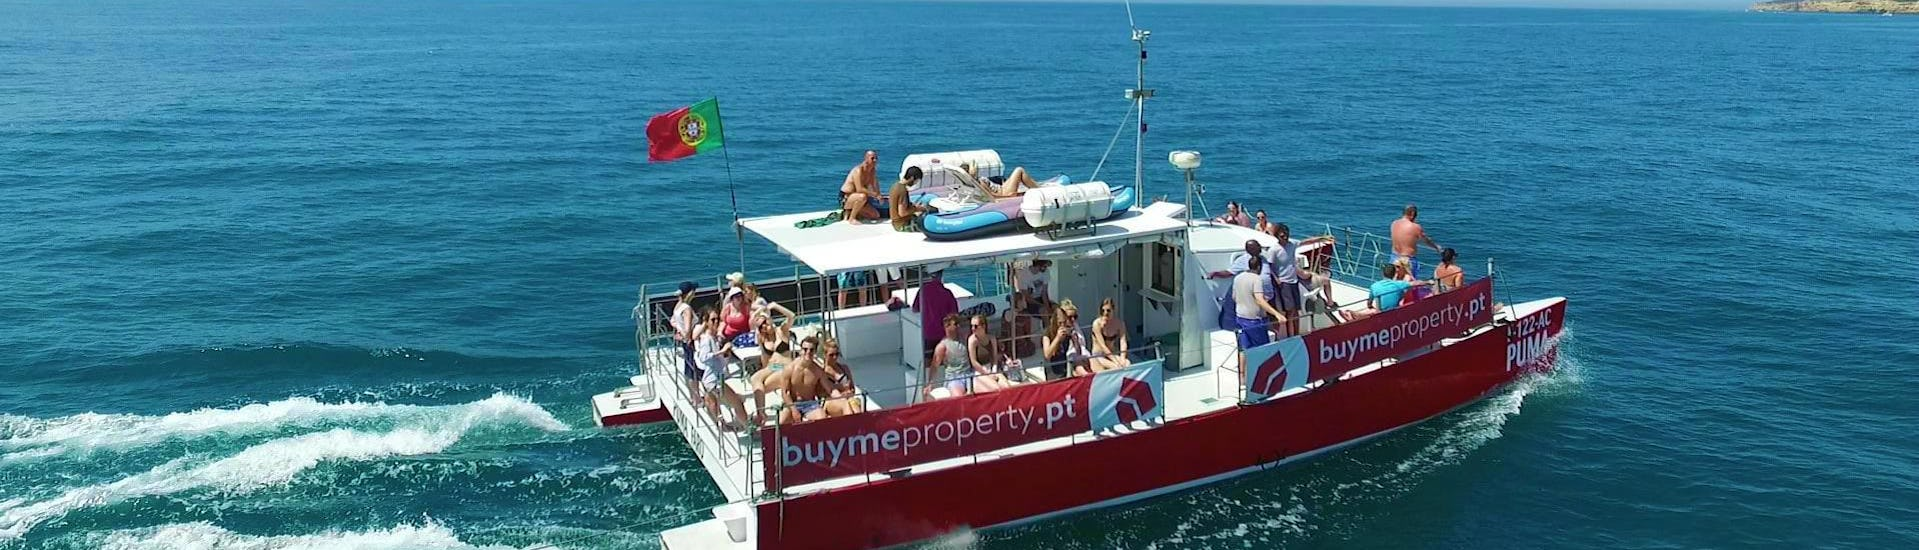 The passengers of the Boat Tour to the Rocks and Caves of Benagil from Vilamoura organized by Cruzeiros da Oura Vilamoura are enjoying their day out on the sea.